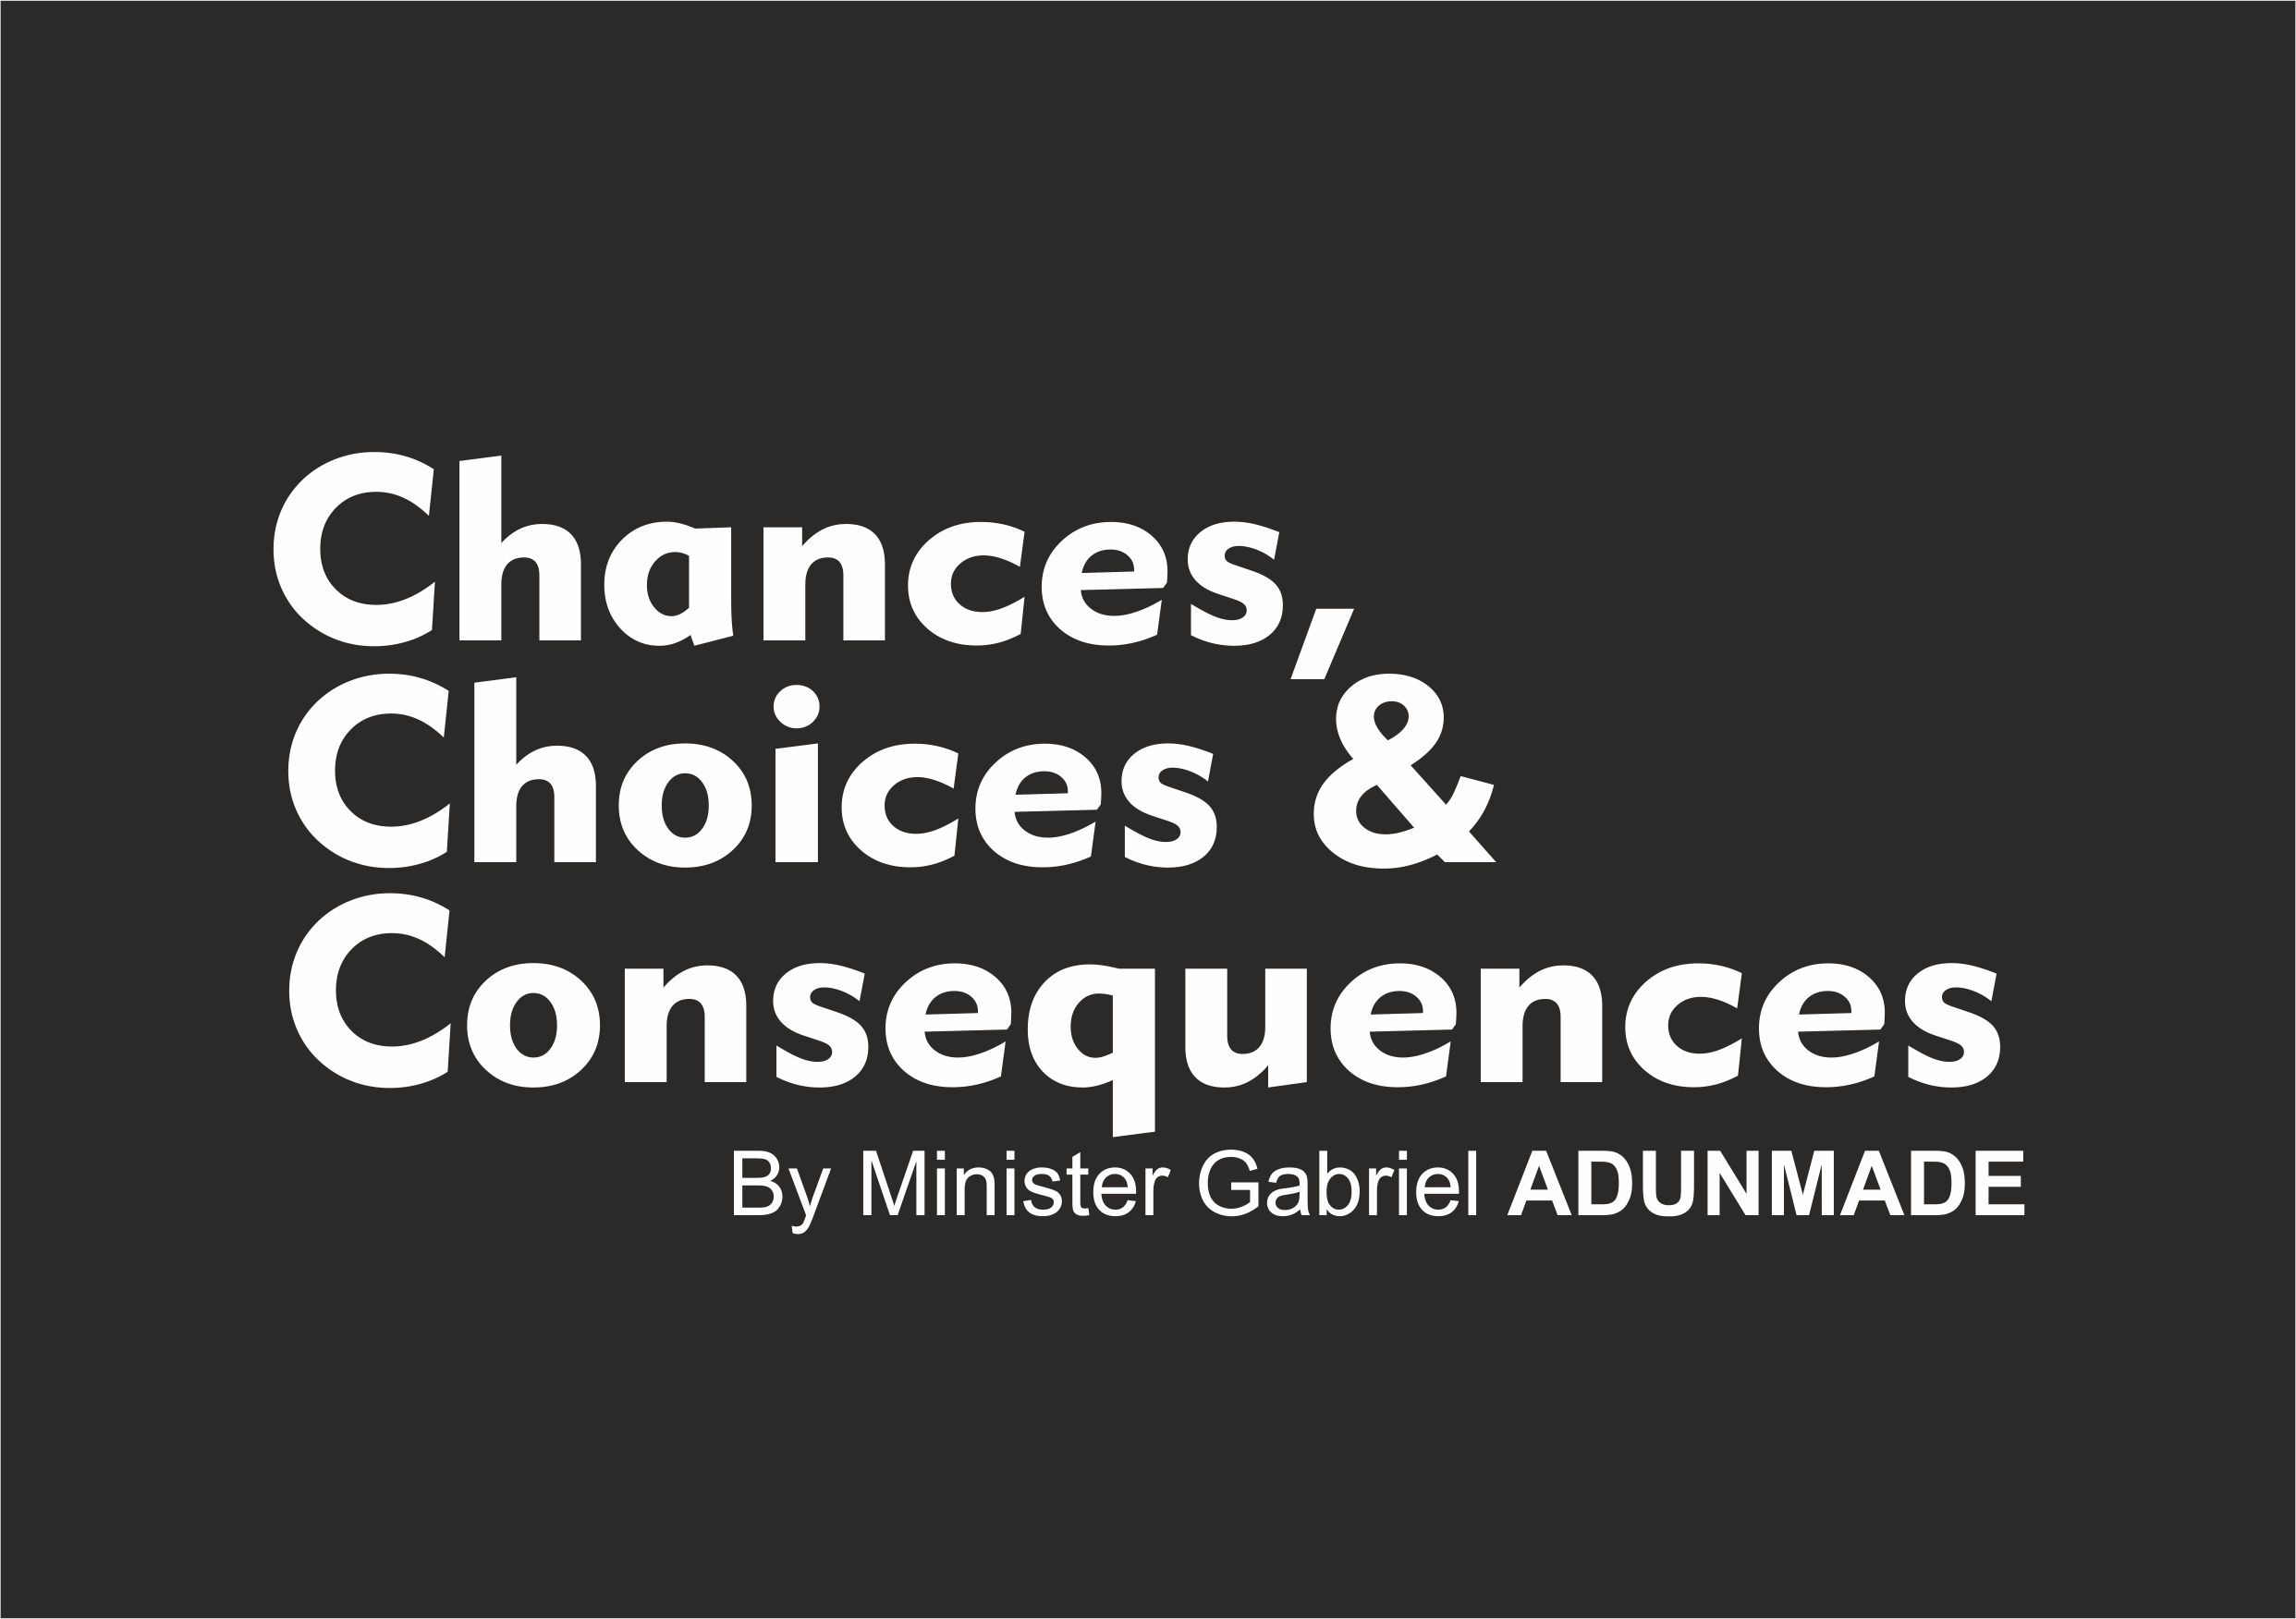 Chances, Choices And Consequences, by Minister Gabriel Adunmade